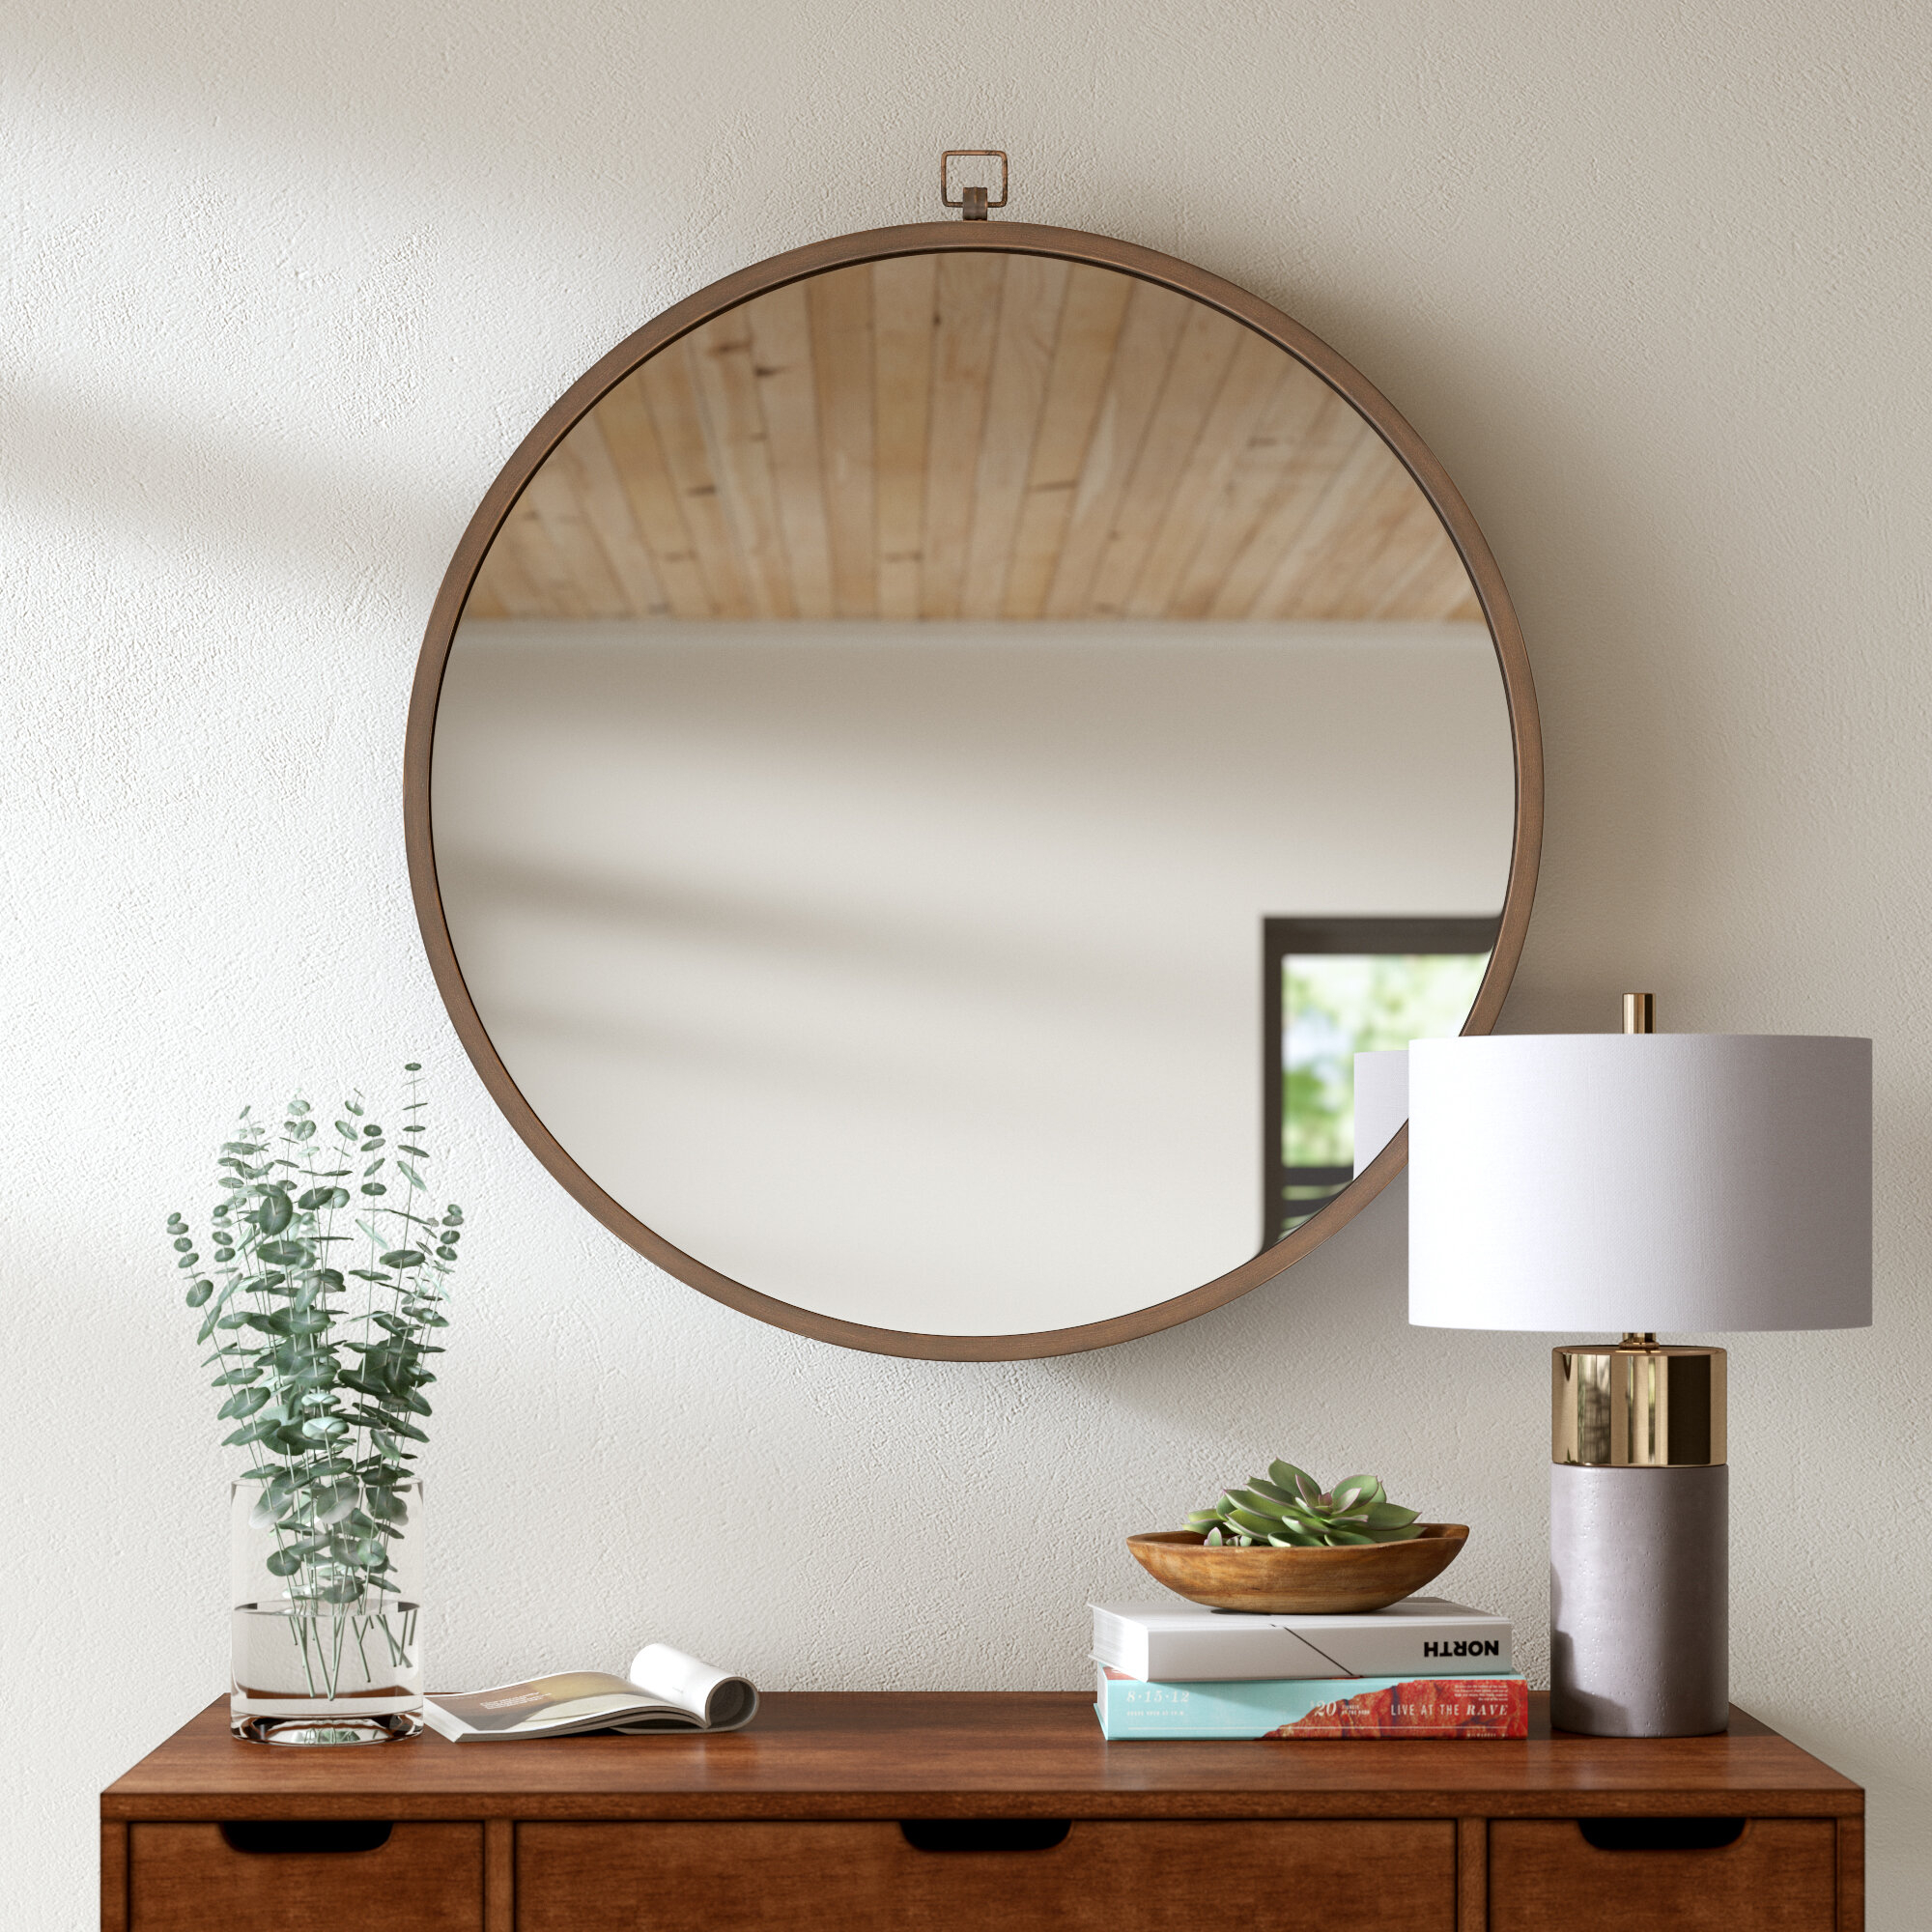 Langley Street | Allmodern Pertaining To Kinley Accent Mirrors (Image 10 of 20)